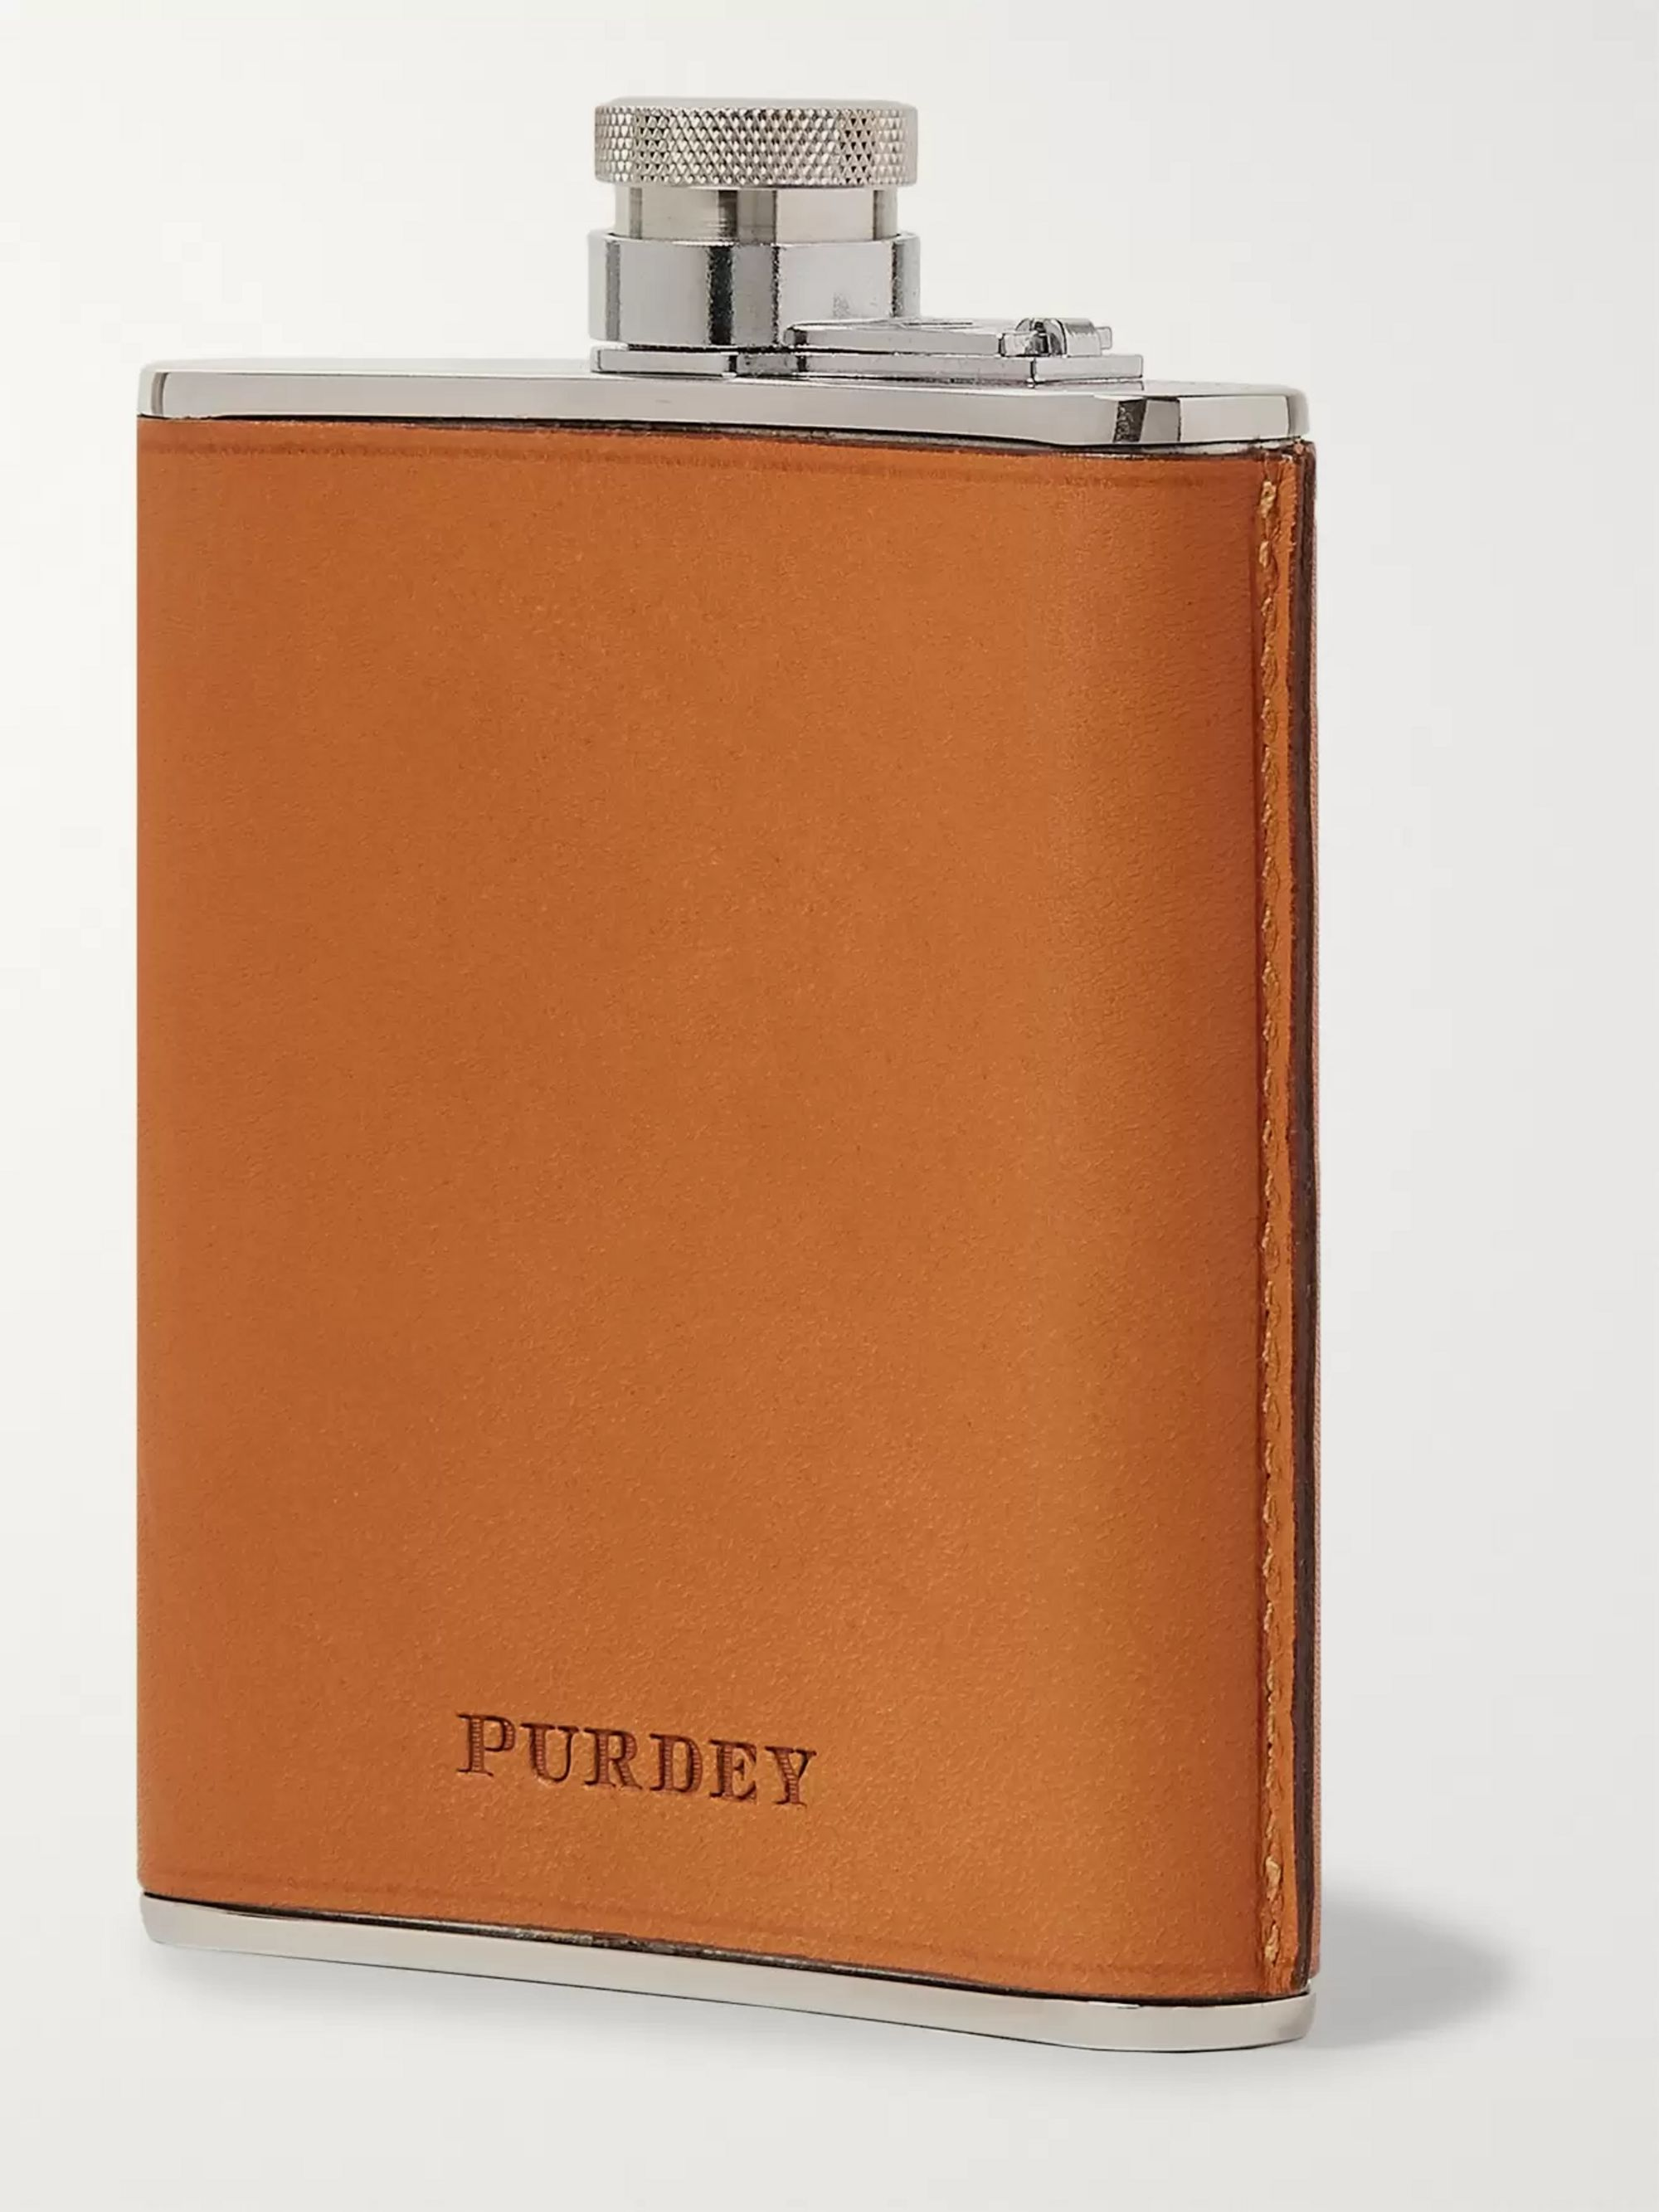 James Purdey & Sons 6oz Leather and Stainless Steel Flask